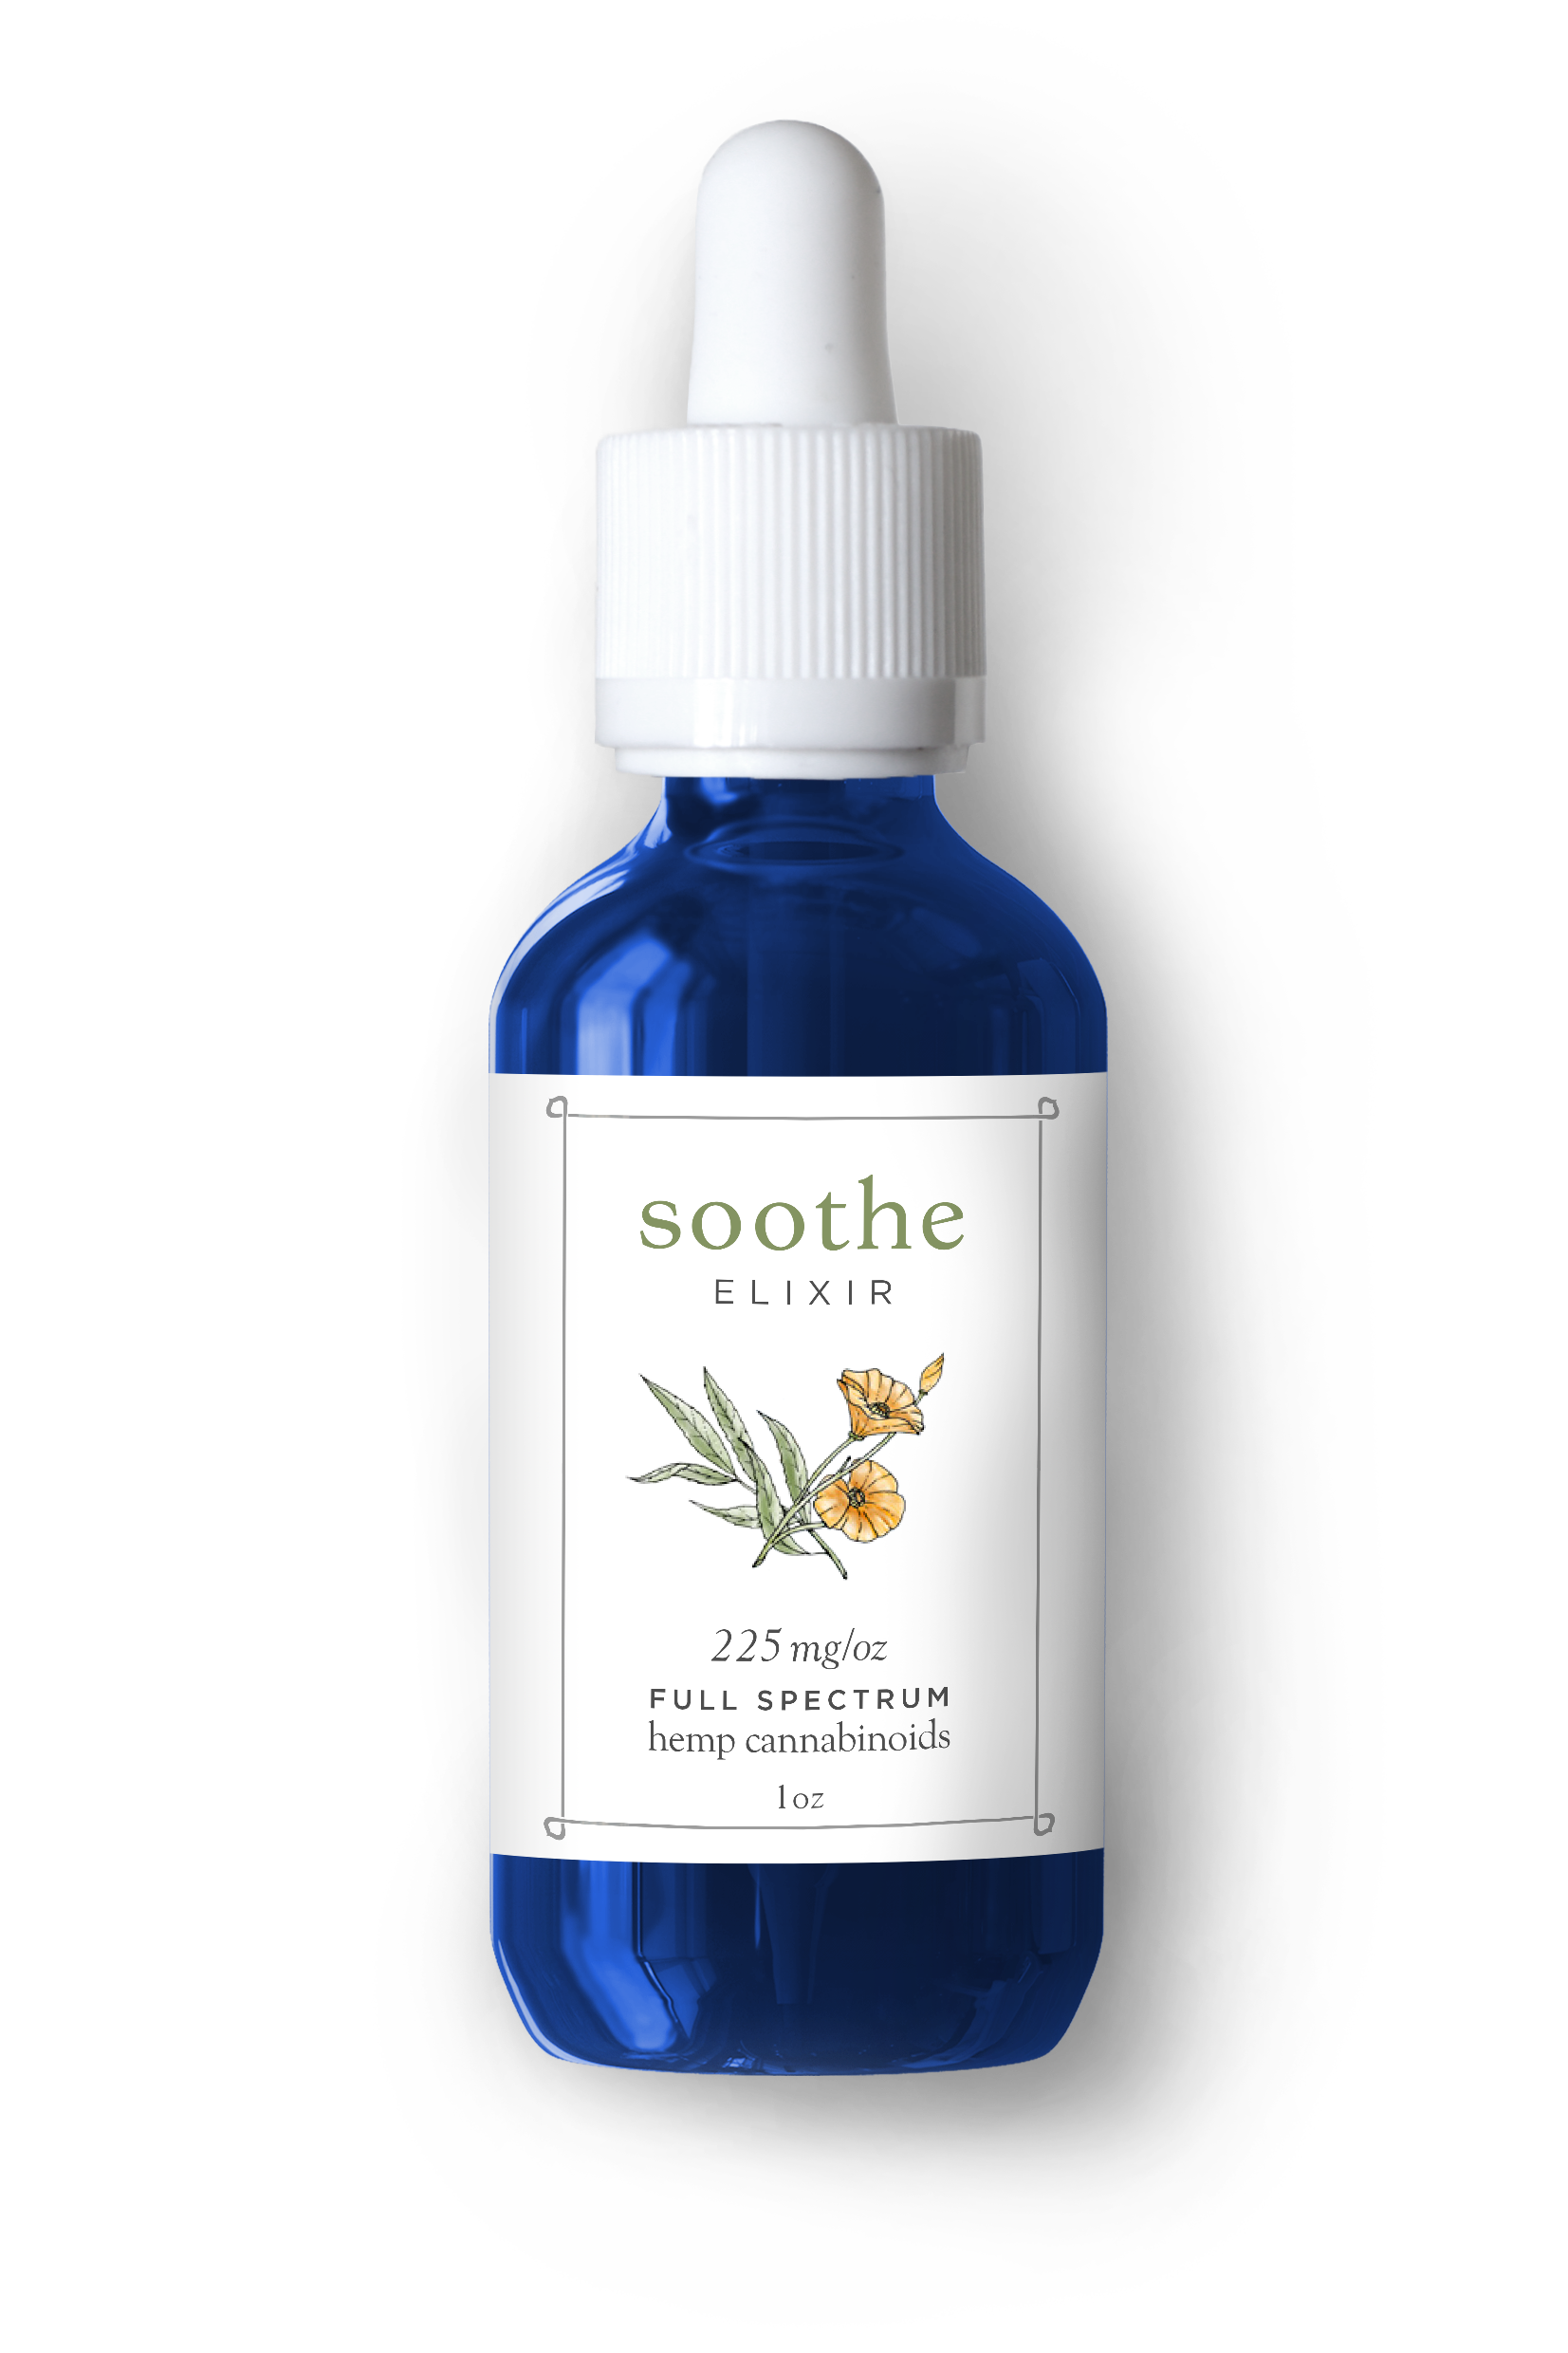 Soothe Elixir. Pain. Inflammation. Fever. Headache. Low back pain. Fibromyalgia.